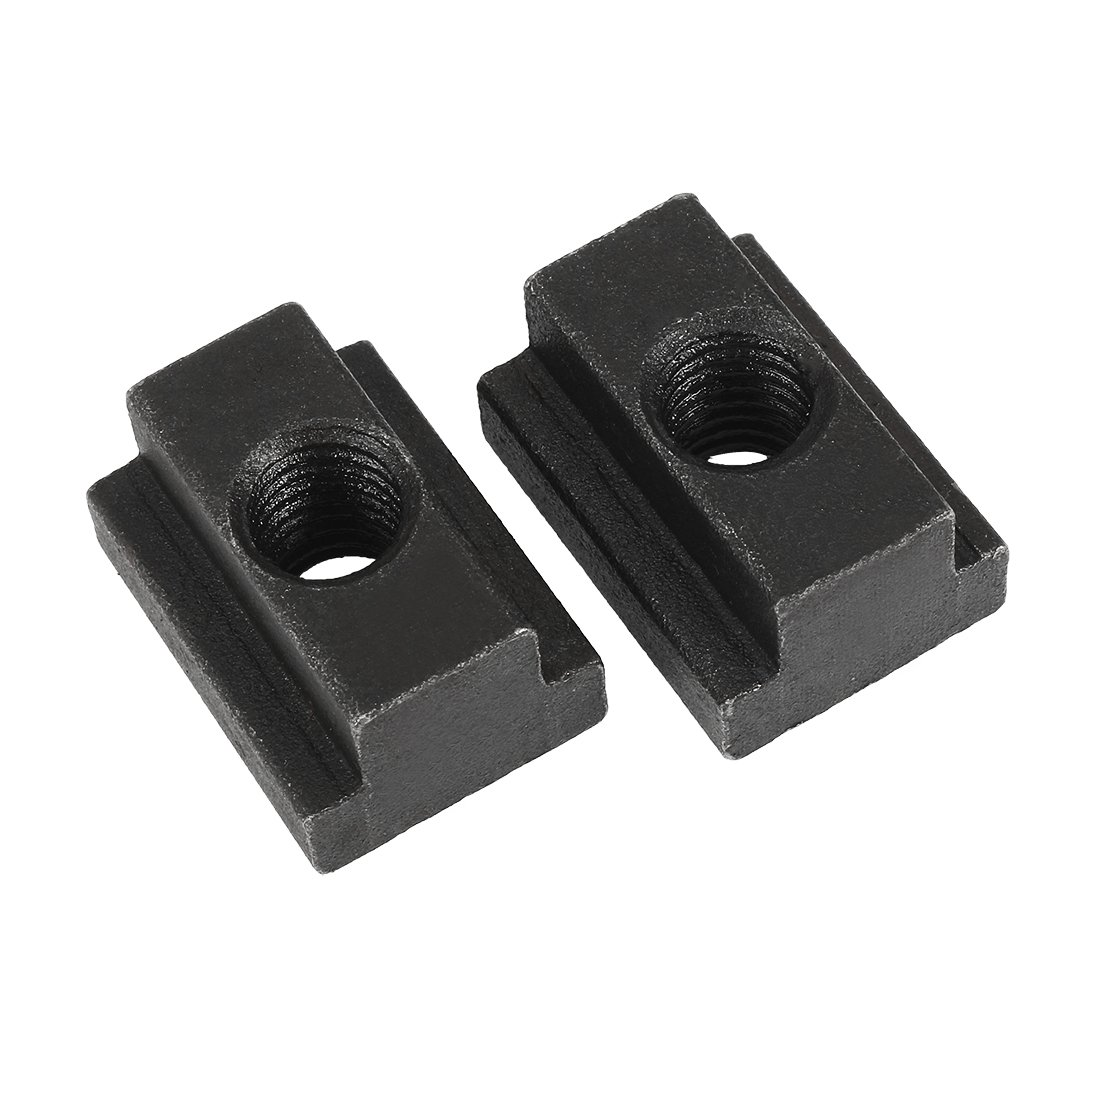 uxcell M8 Female Thread Steel T-Slot Nut Grade 12.9 Tapped Through 2pcs